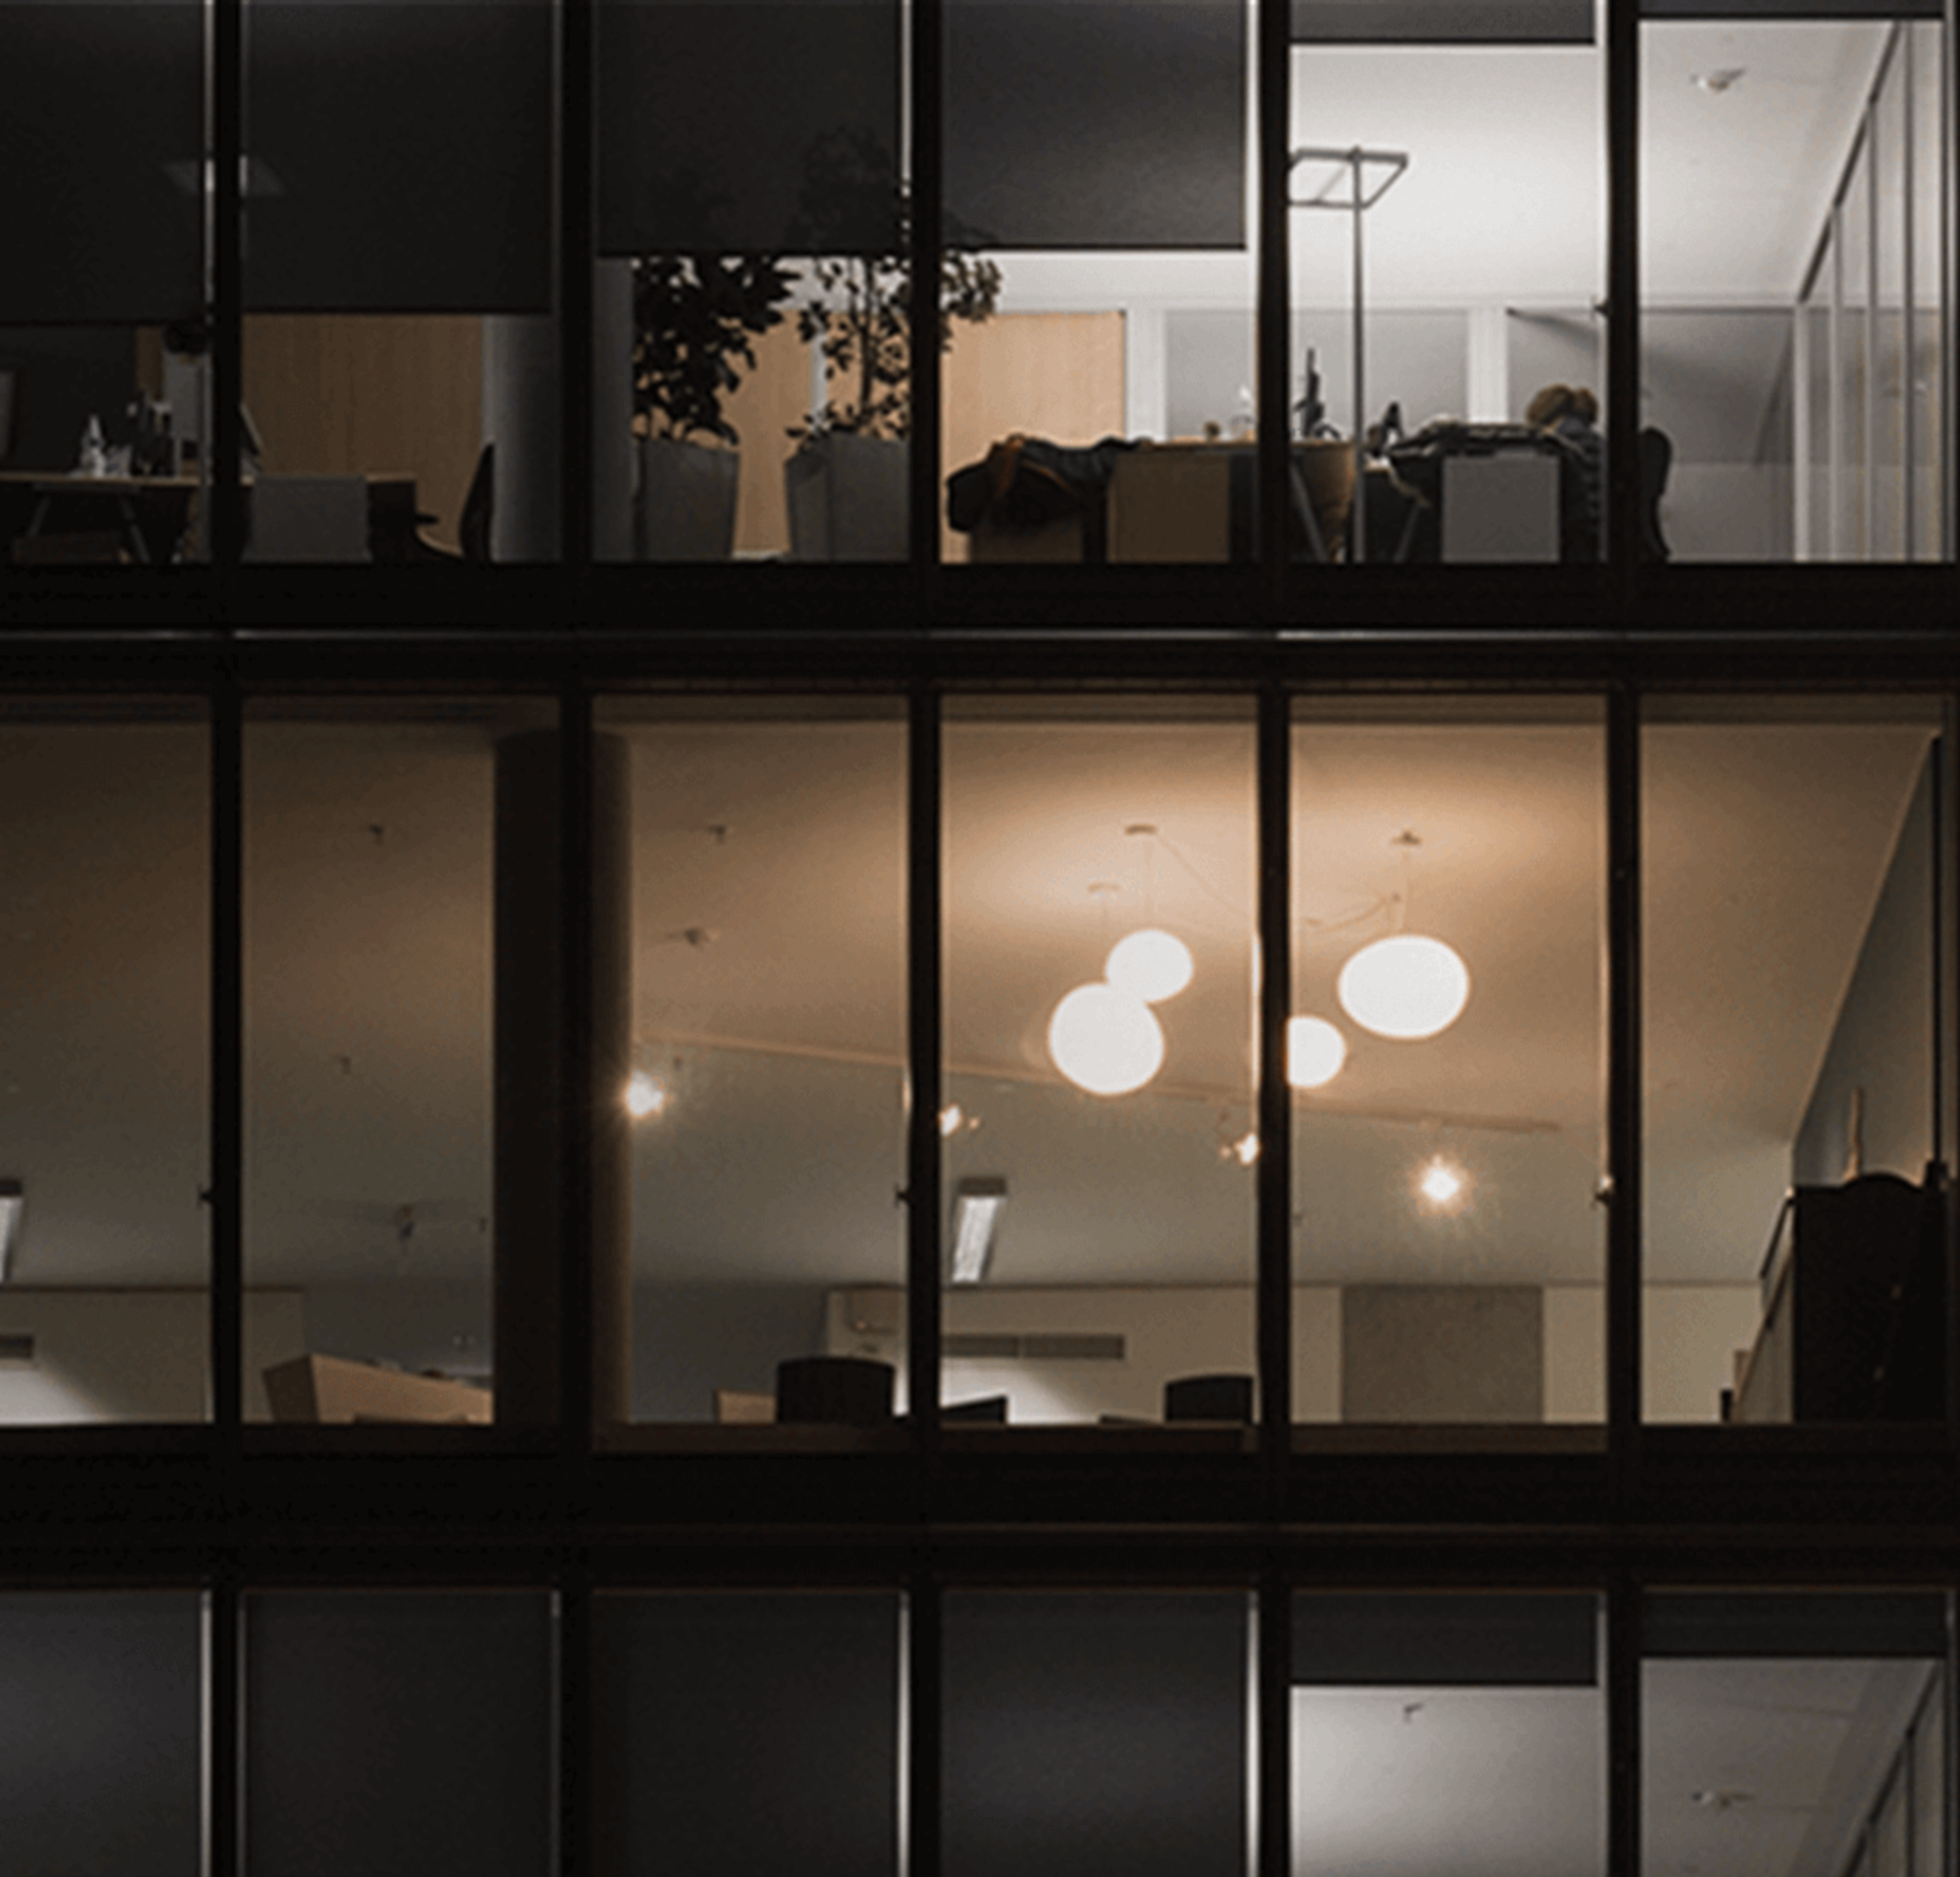 An image of three mostly dark floors in a multi-story office building at night.